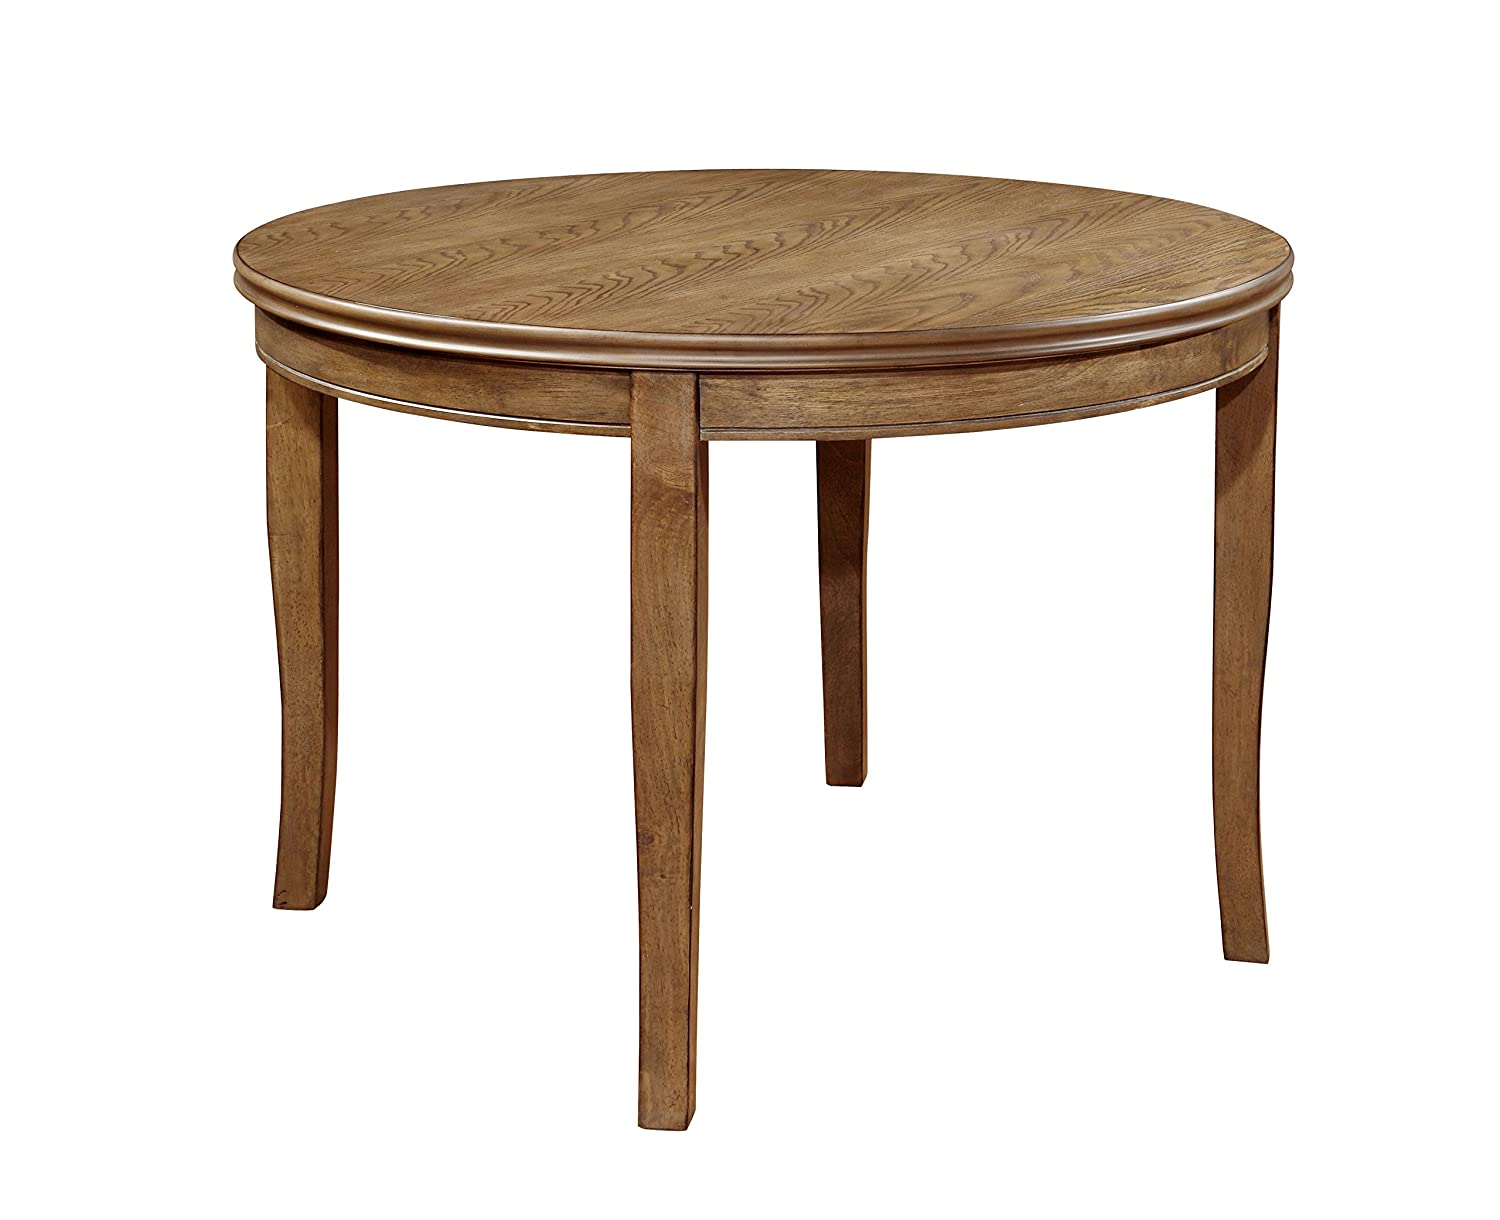 Furniture of America Dekina Transitional Round Dining Table, Natural Finish